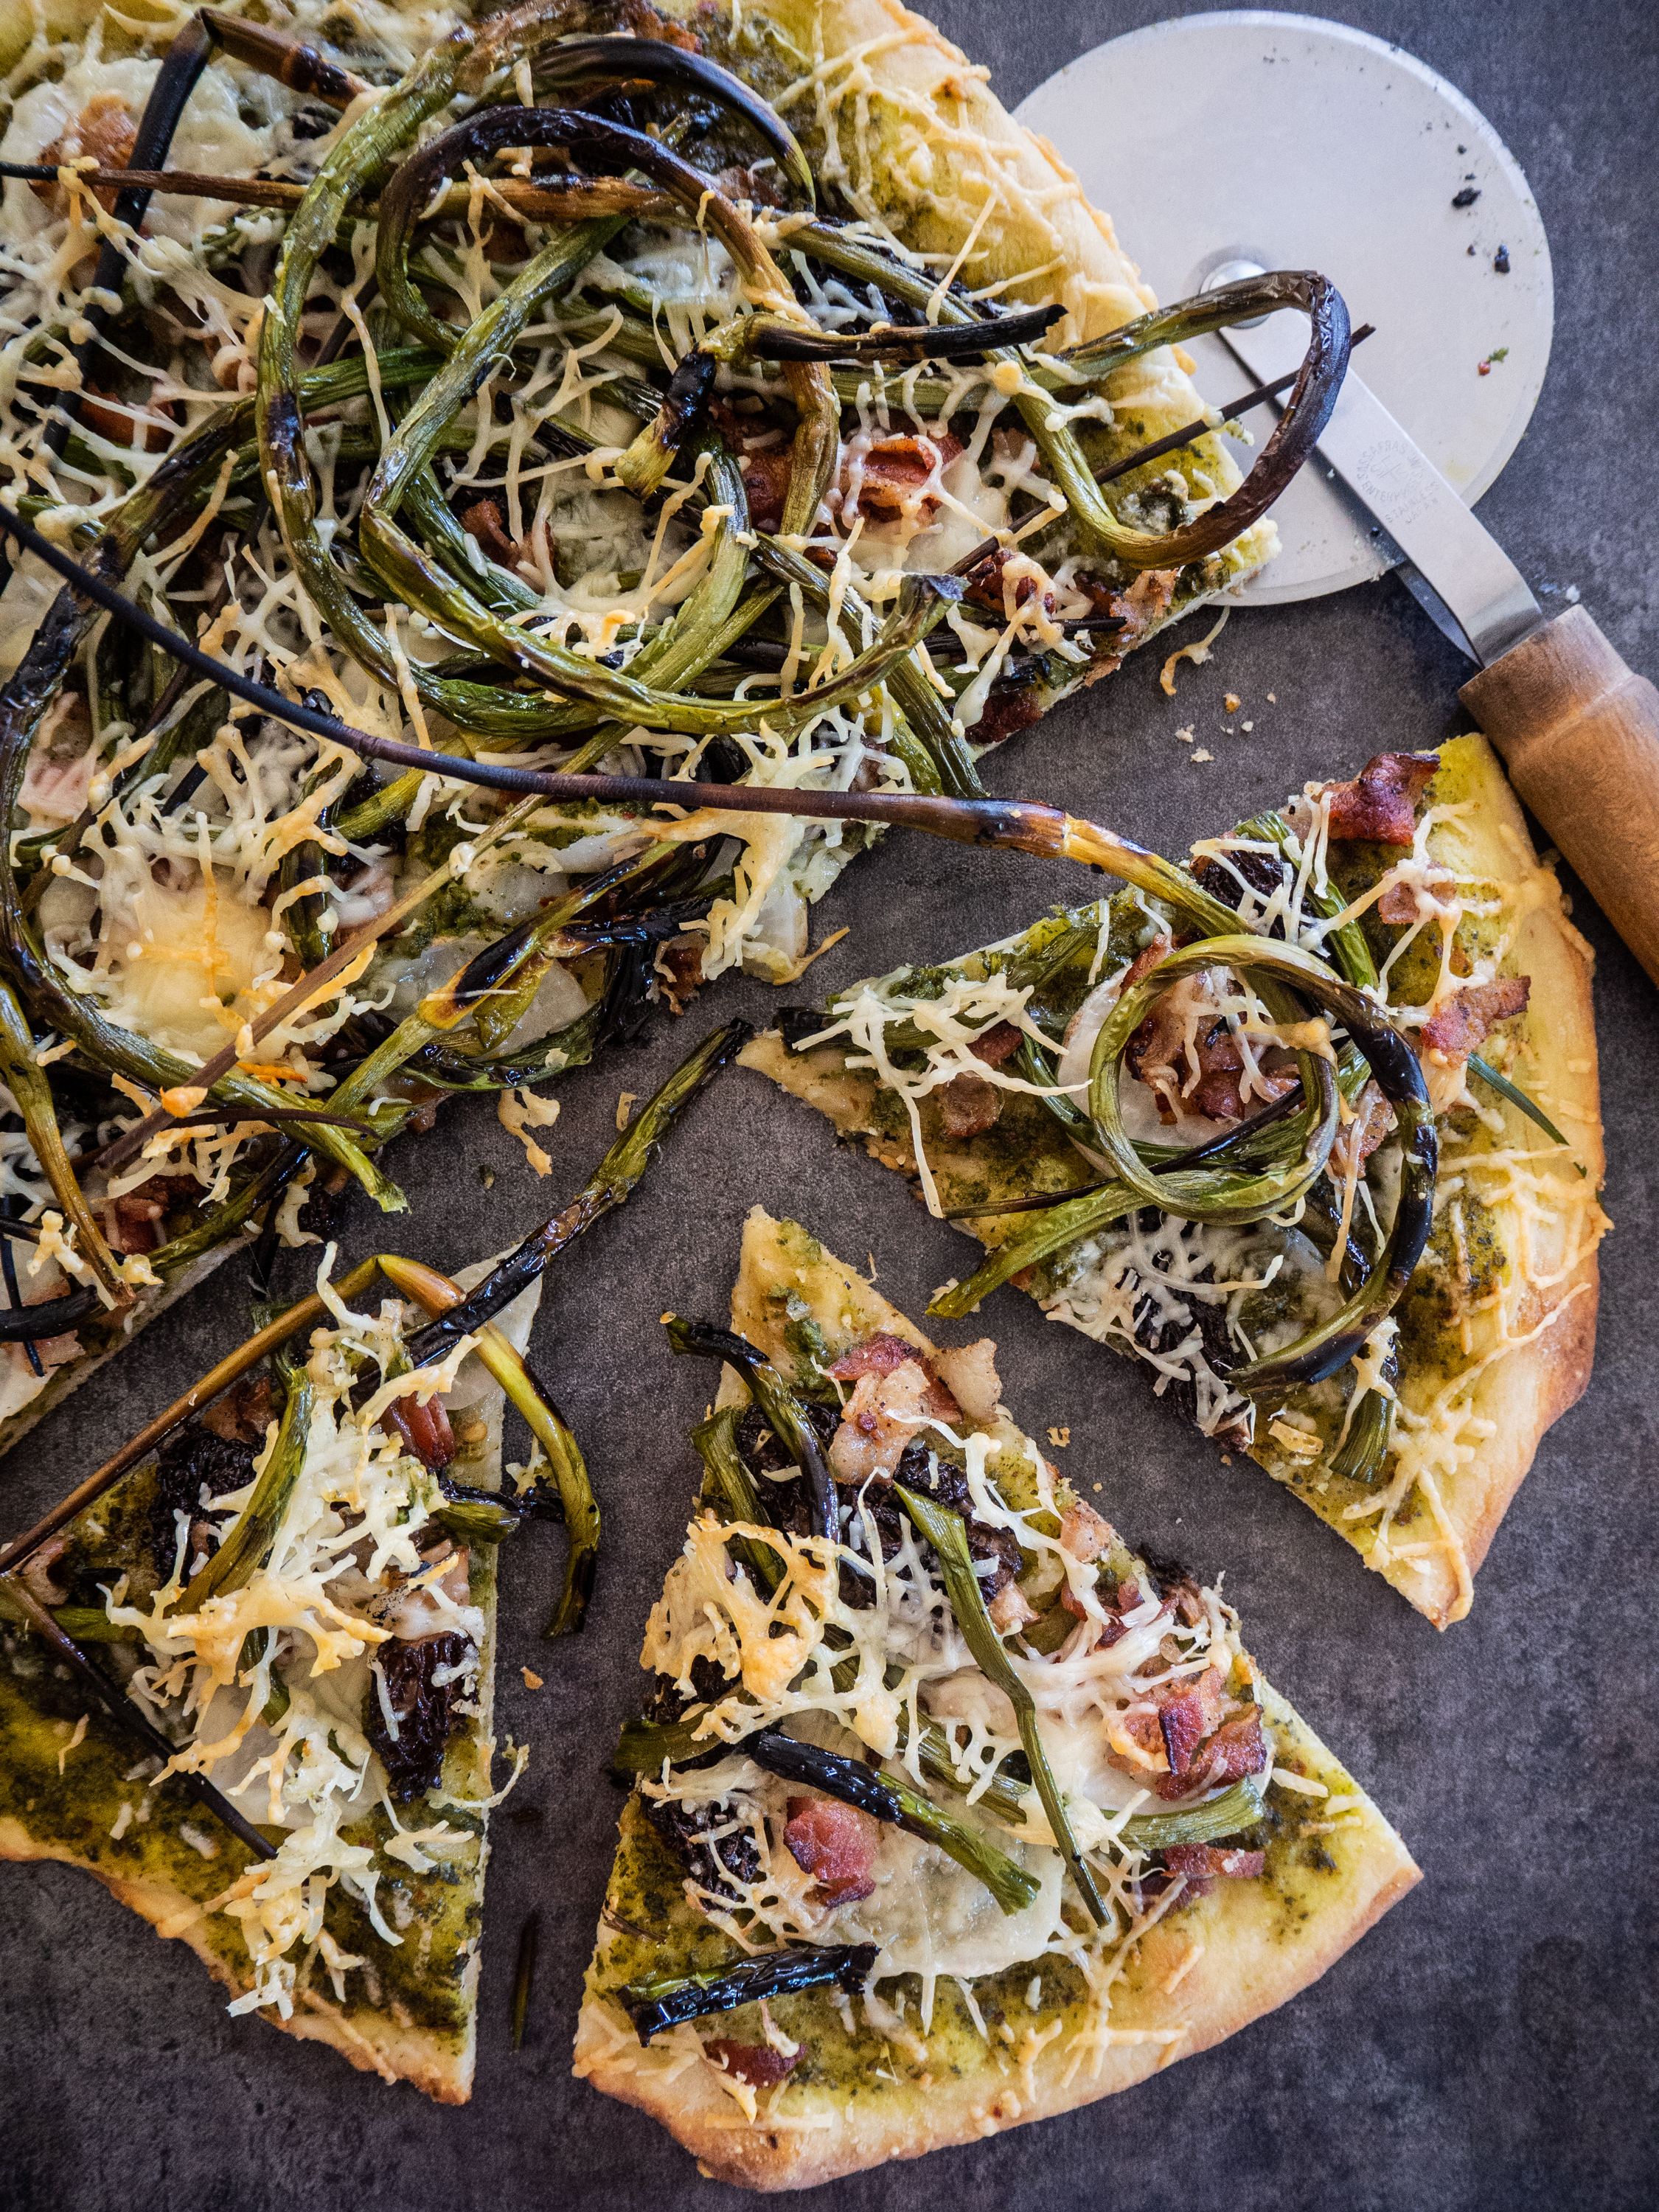 Garlic Scape and Morel Mushroom Pizza with Turnips and Bacon